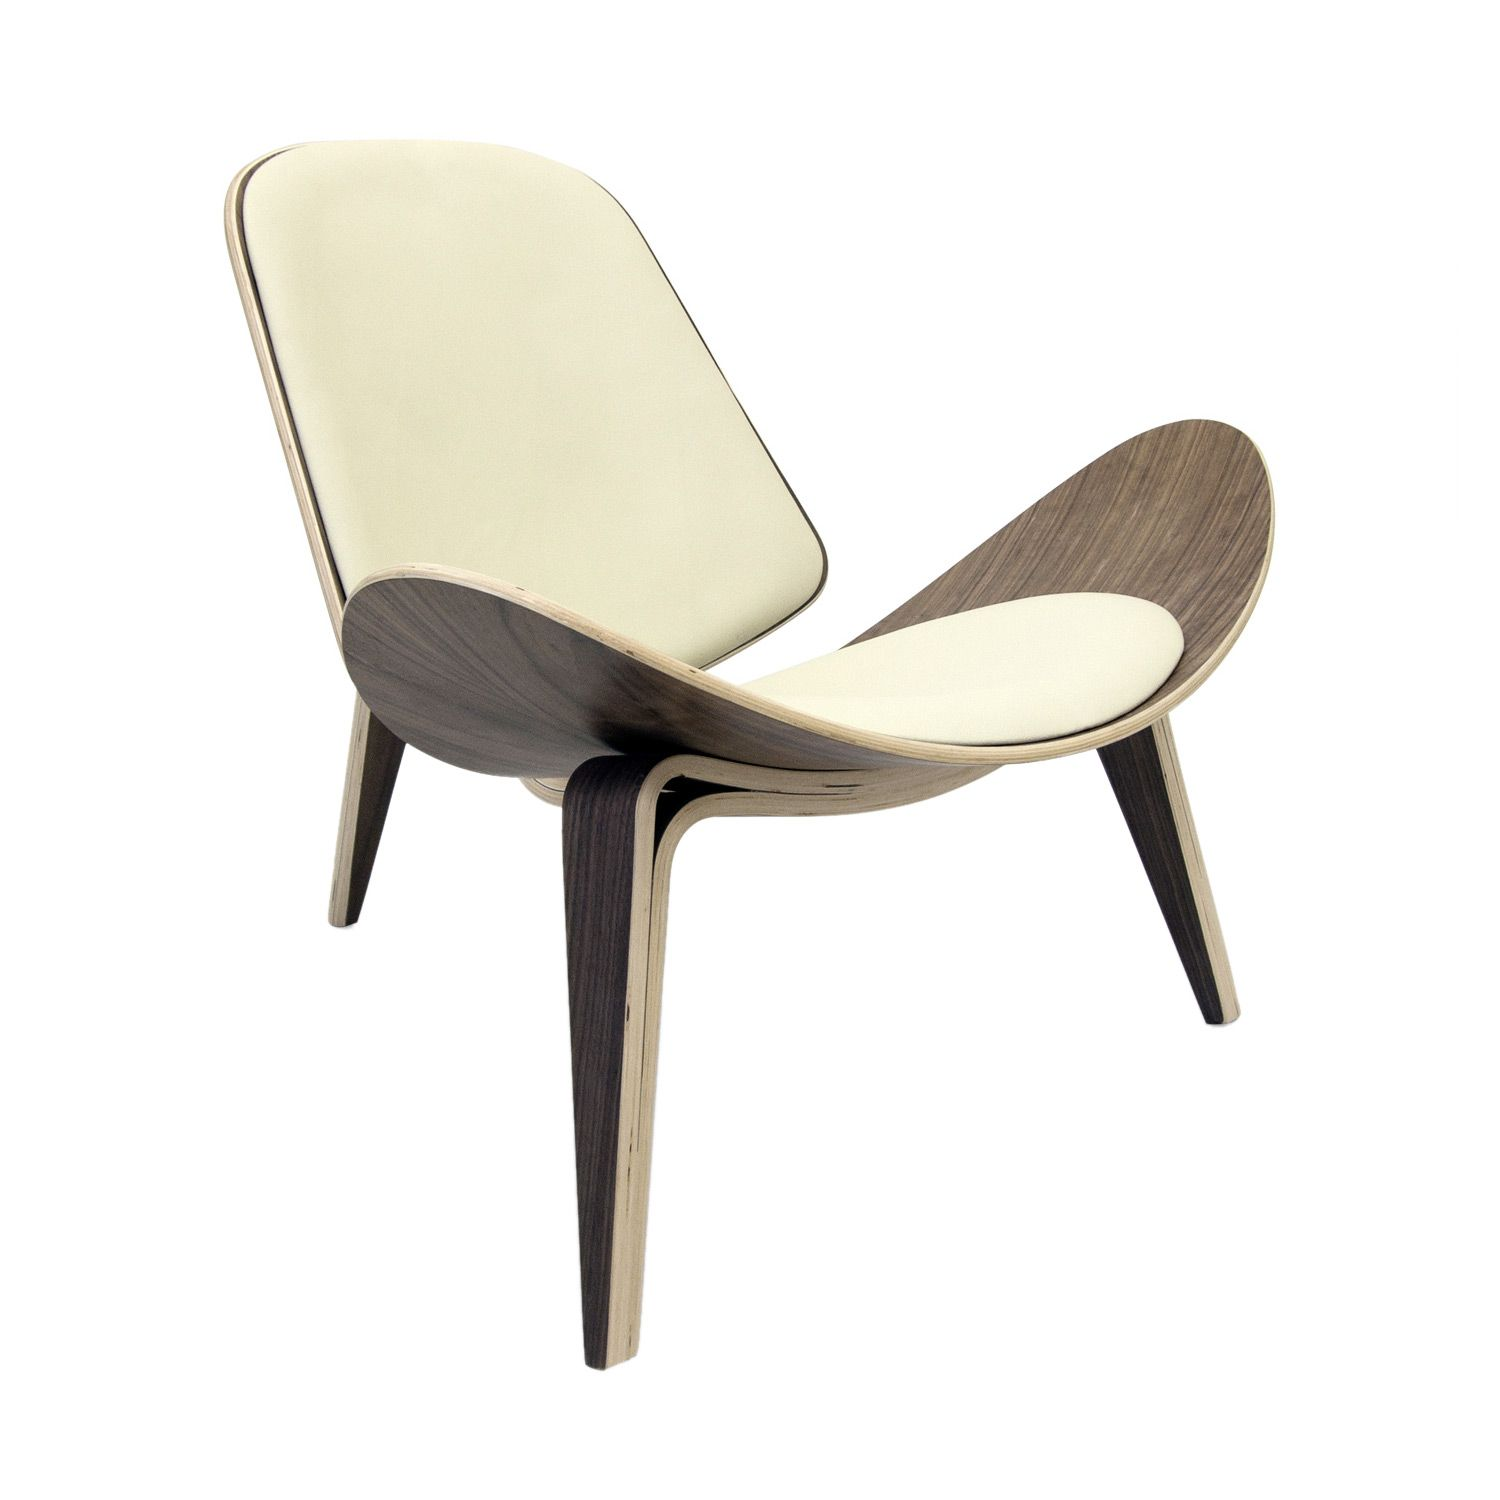 Furniture And Decor For The Modern Lifestyle Furniture Lounge